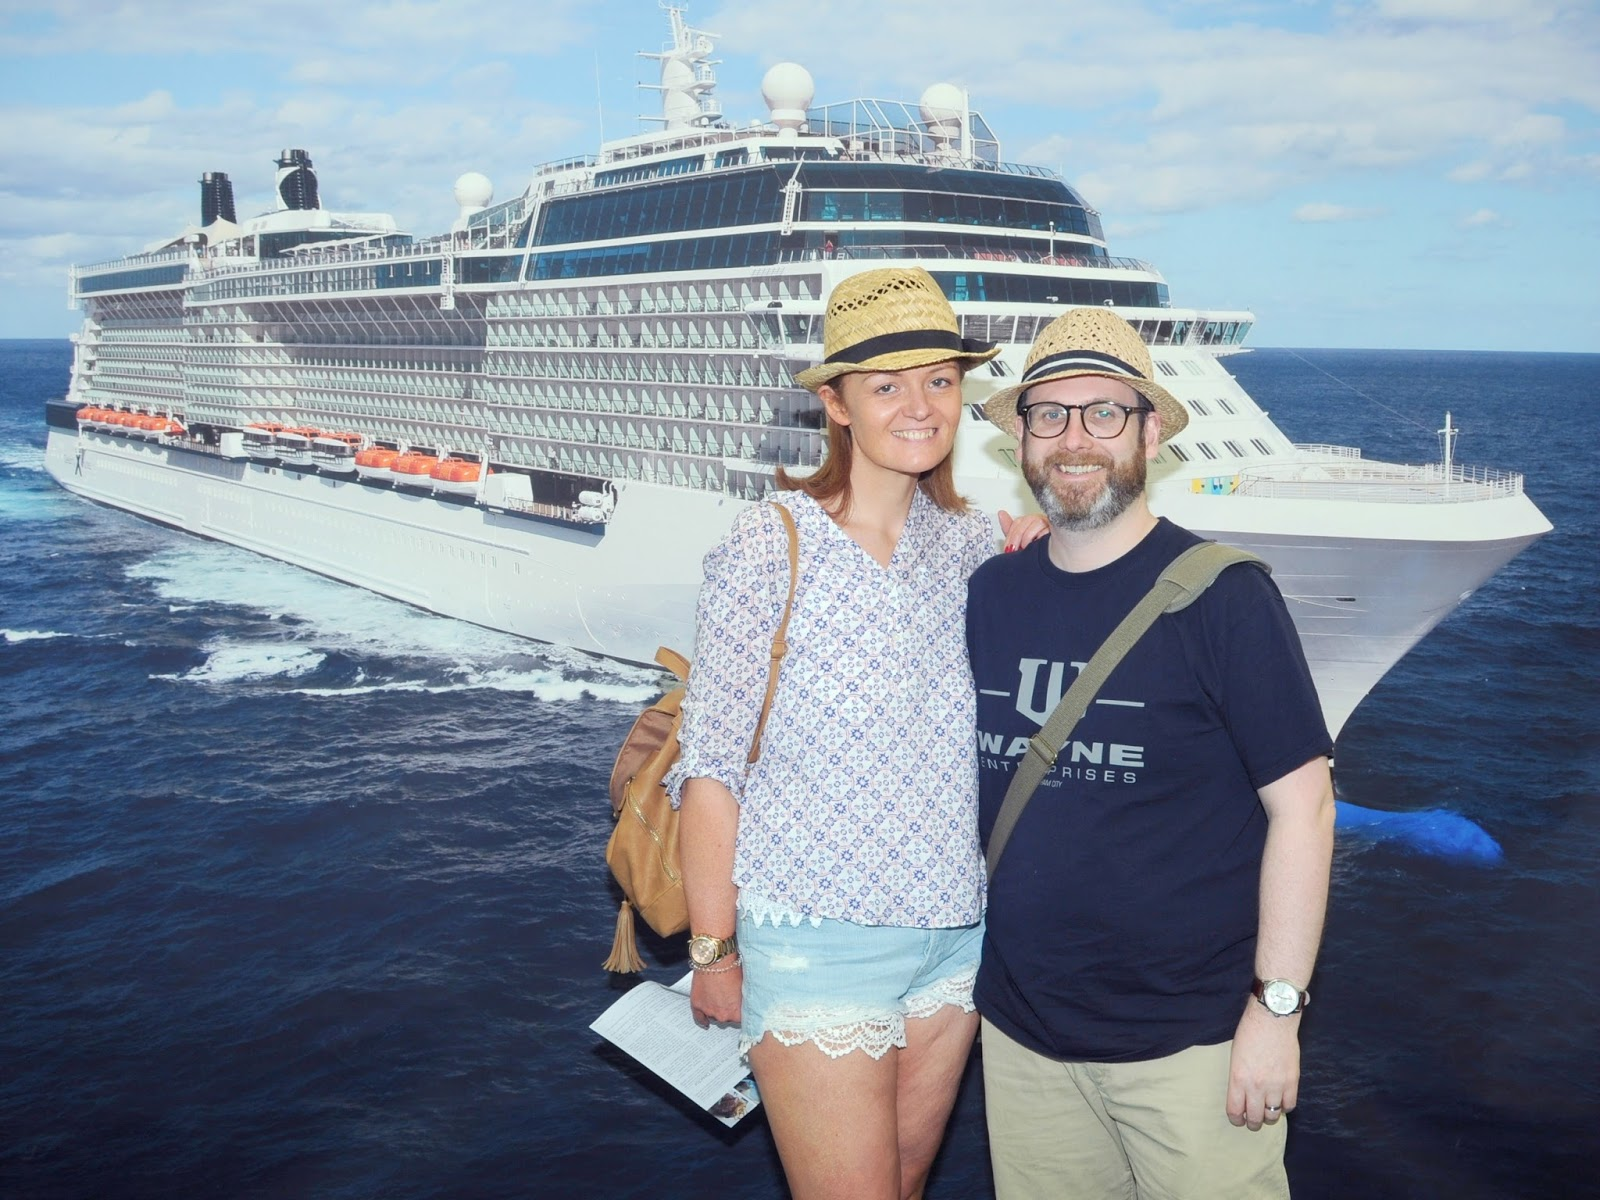 The Honeymoon Diaries - All Aboard Celebrity Eclipse